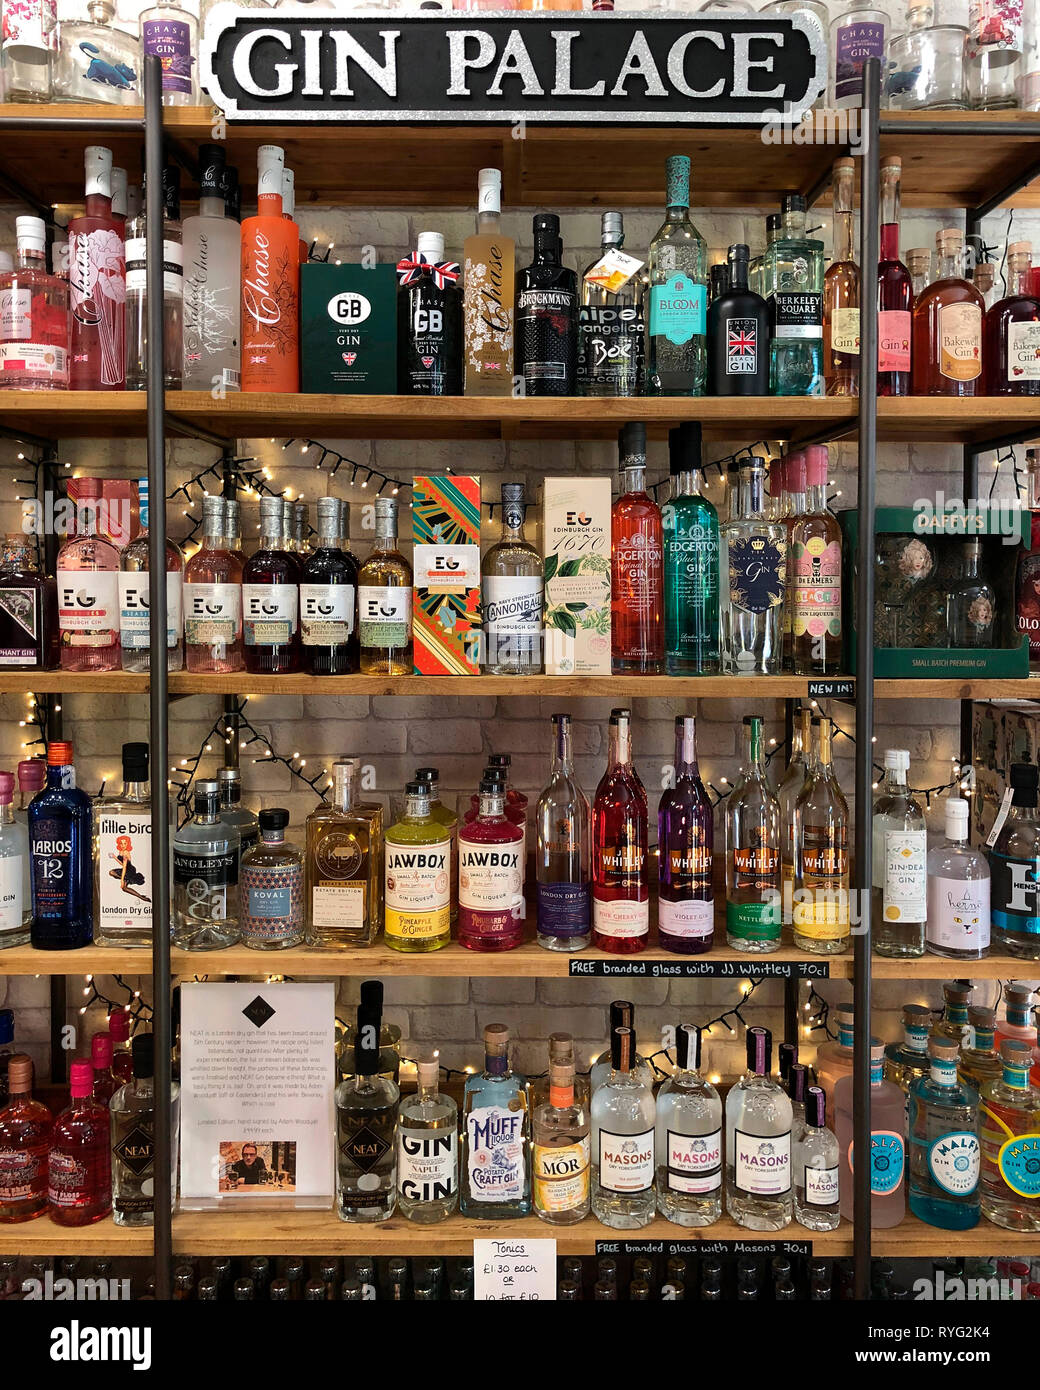 A Gin Palace - A large collection of speciality, craft and bathtub gins. Stock Photo